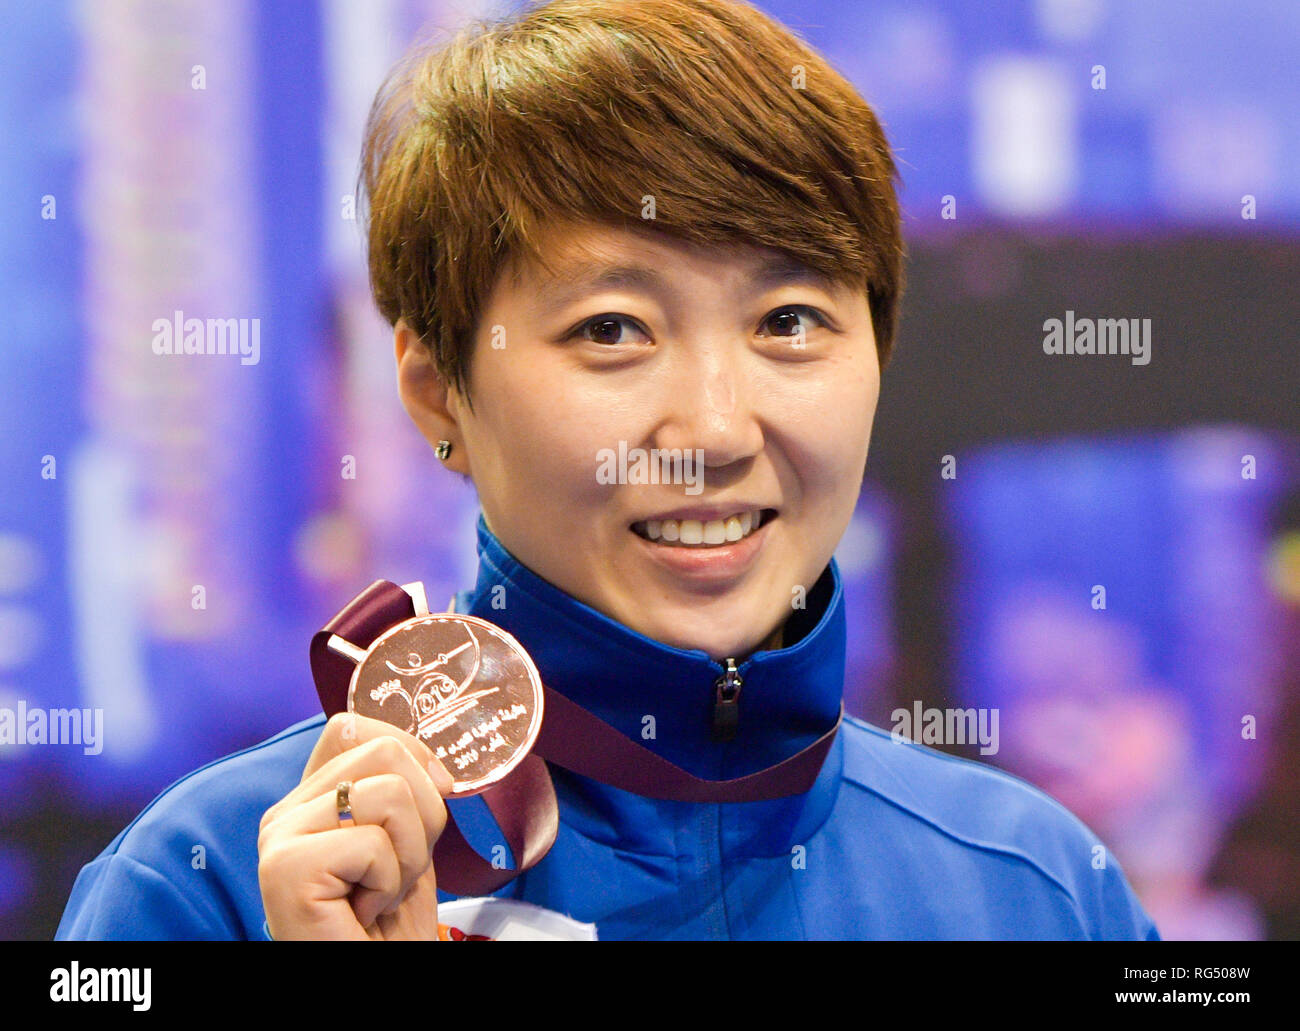 Doha. 27th Jan, 2019. Bronze medallists Hyojung Jung of South Korea celebrates on the podium during the awarding ceremony of the women?s Epee Grand Prix at the aspire academy in the Qatari capital Doha on Jan. 27, 2019. Credit: Nikku/Xinhua/Alamy Live News - Stock Image